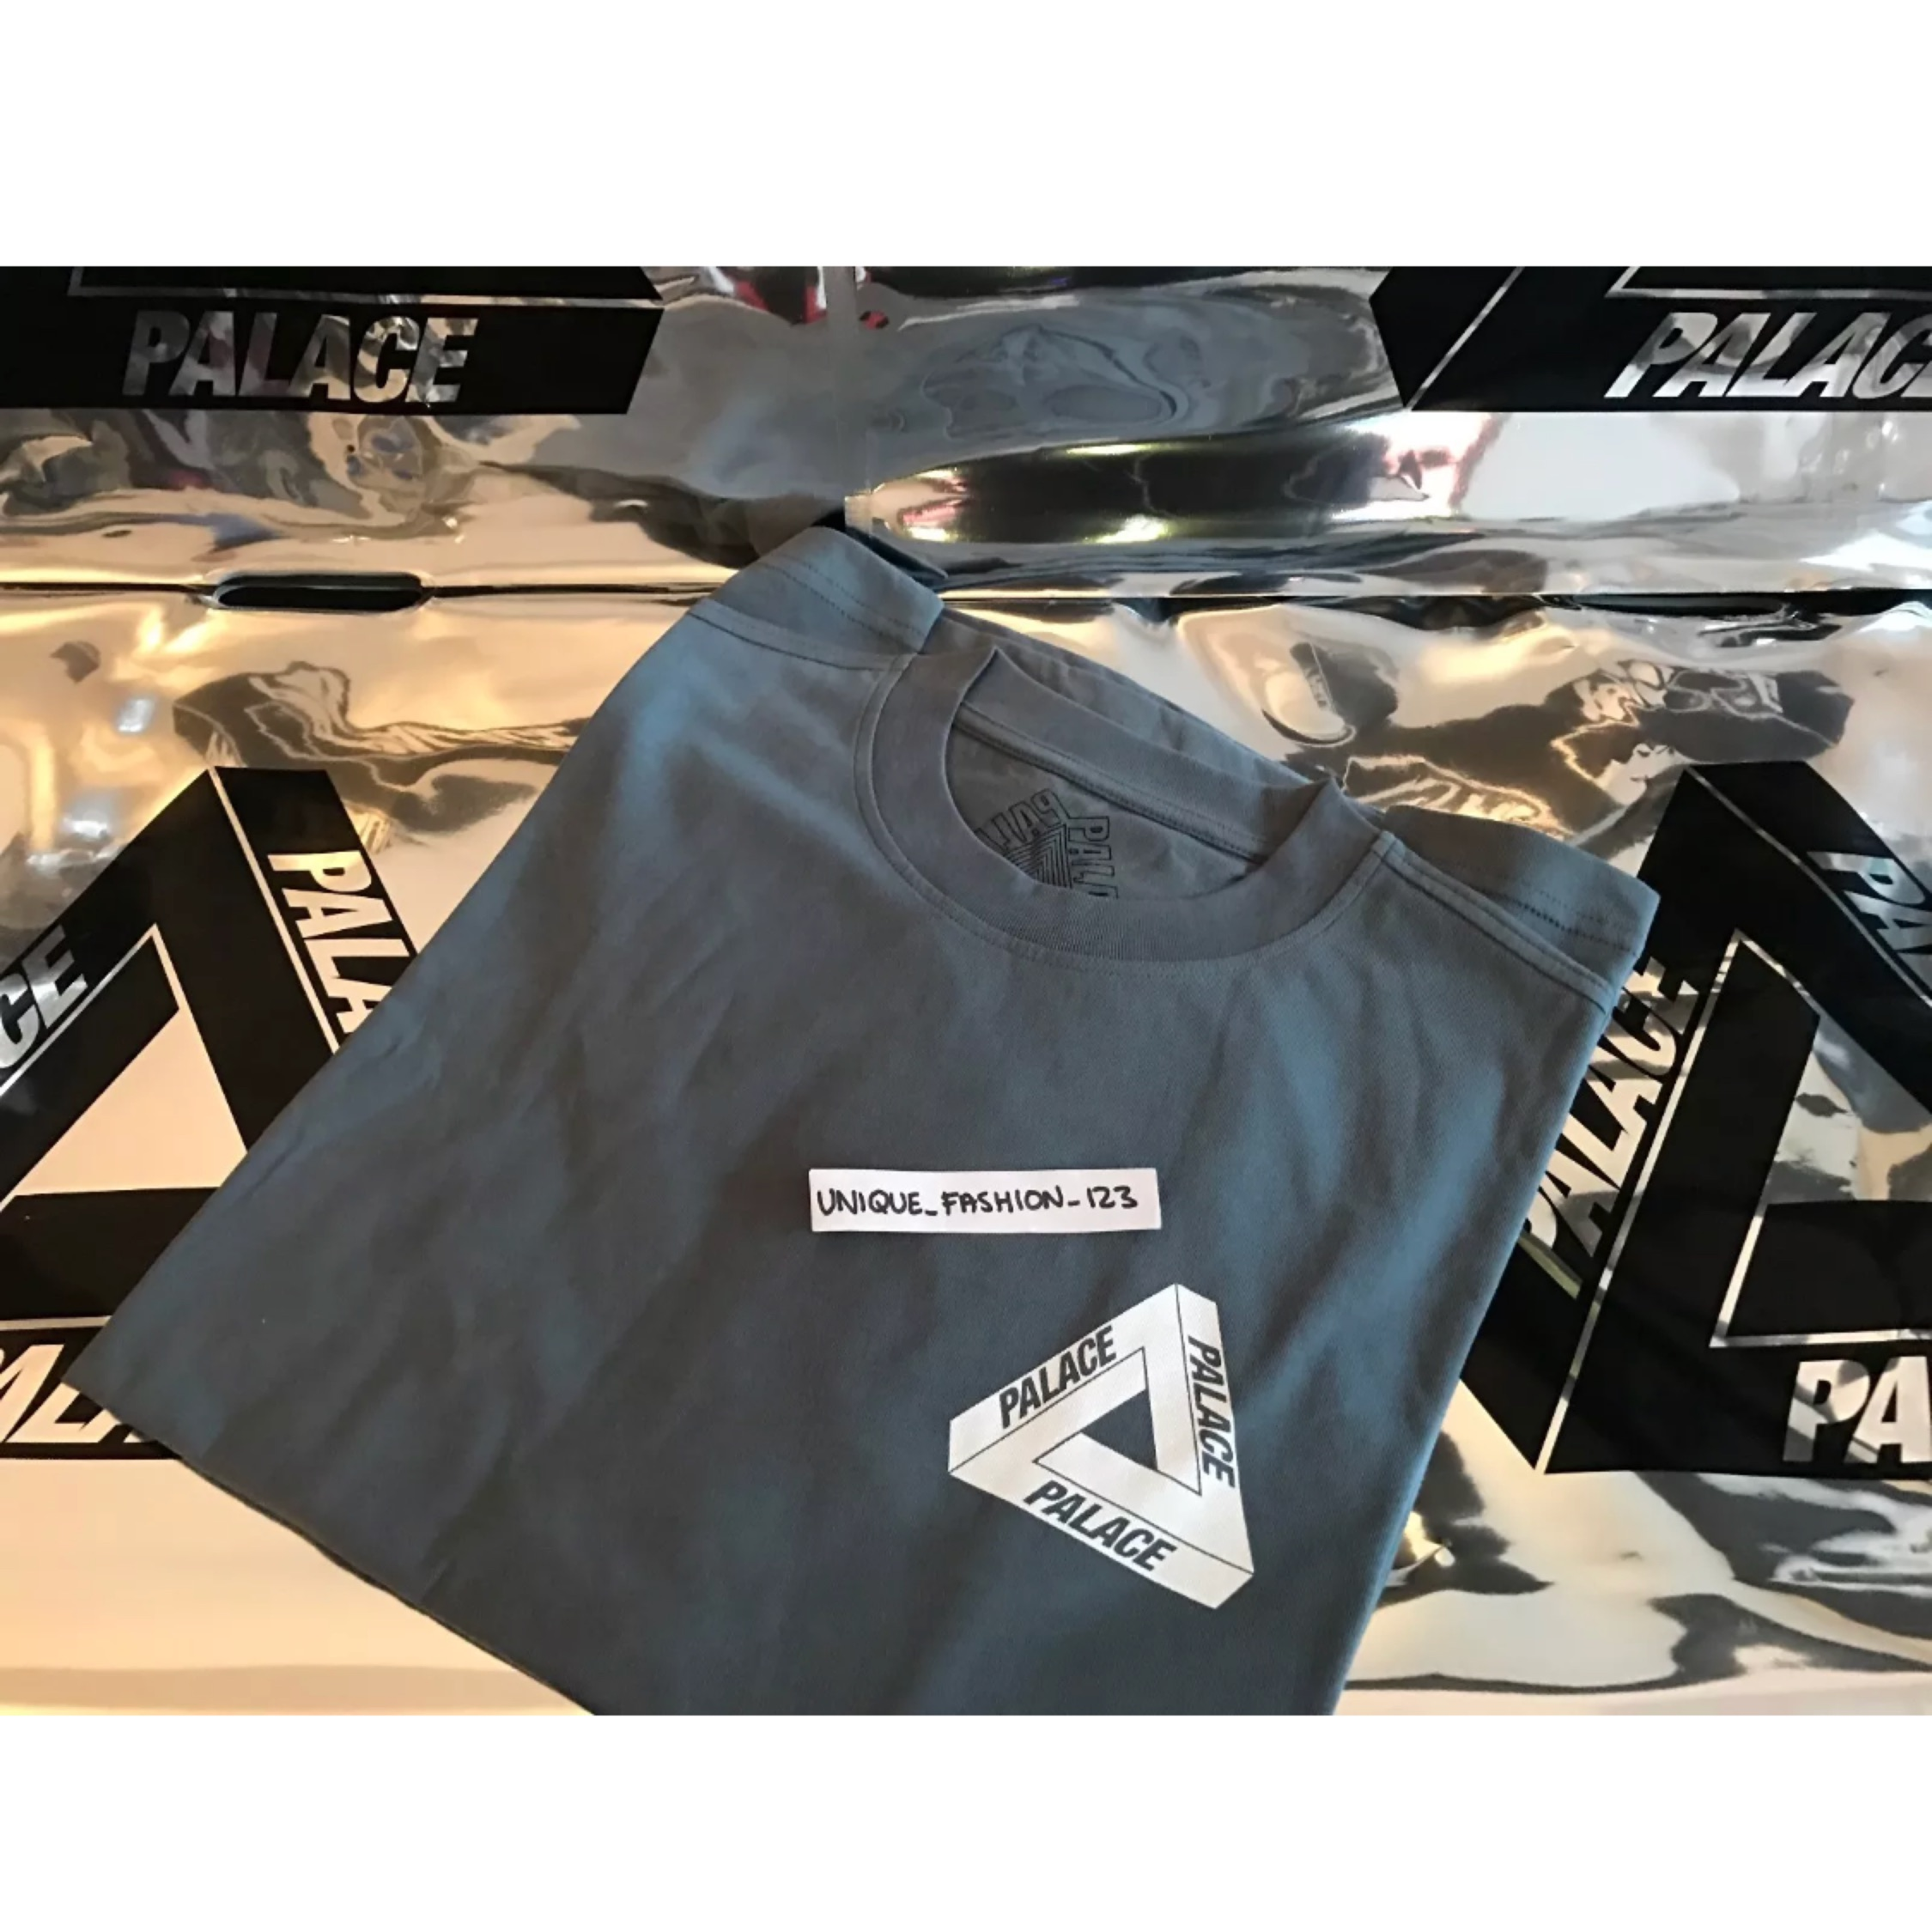 Palace Joker T Shirt New Grey Medium New